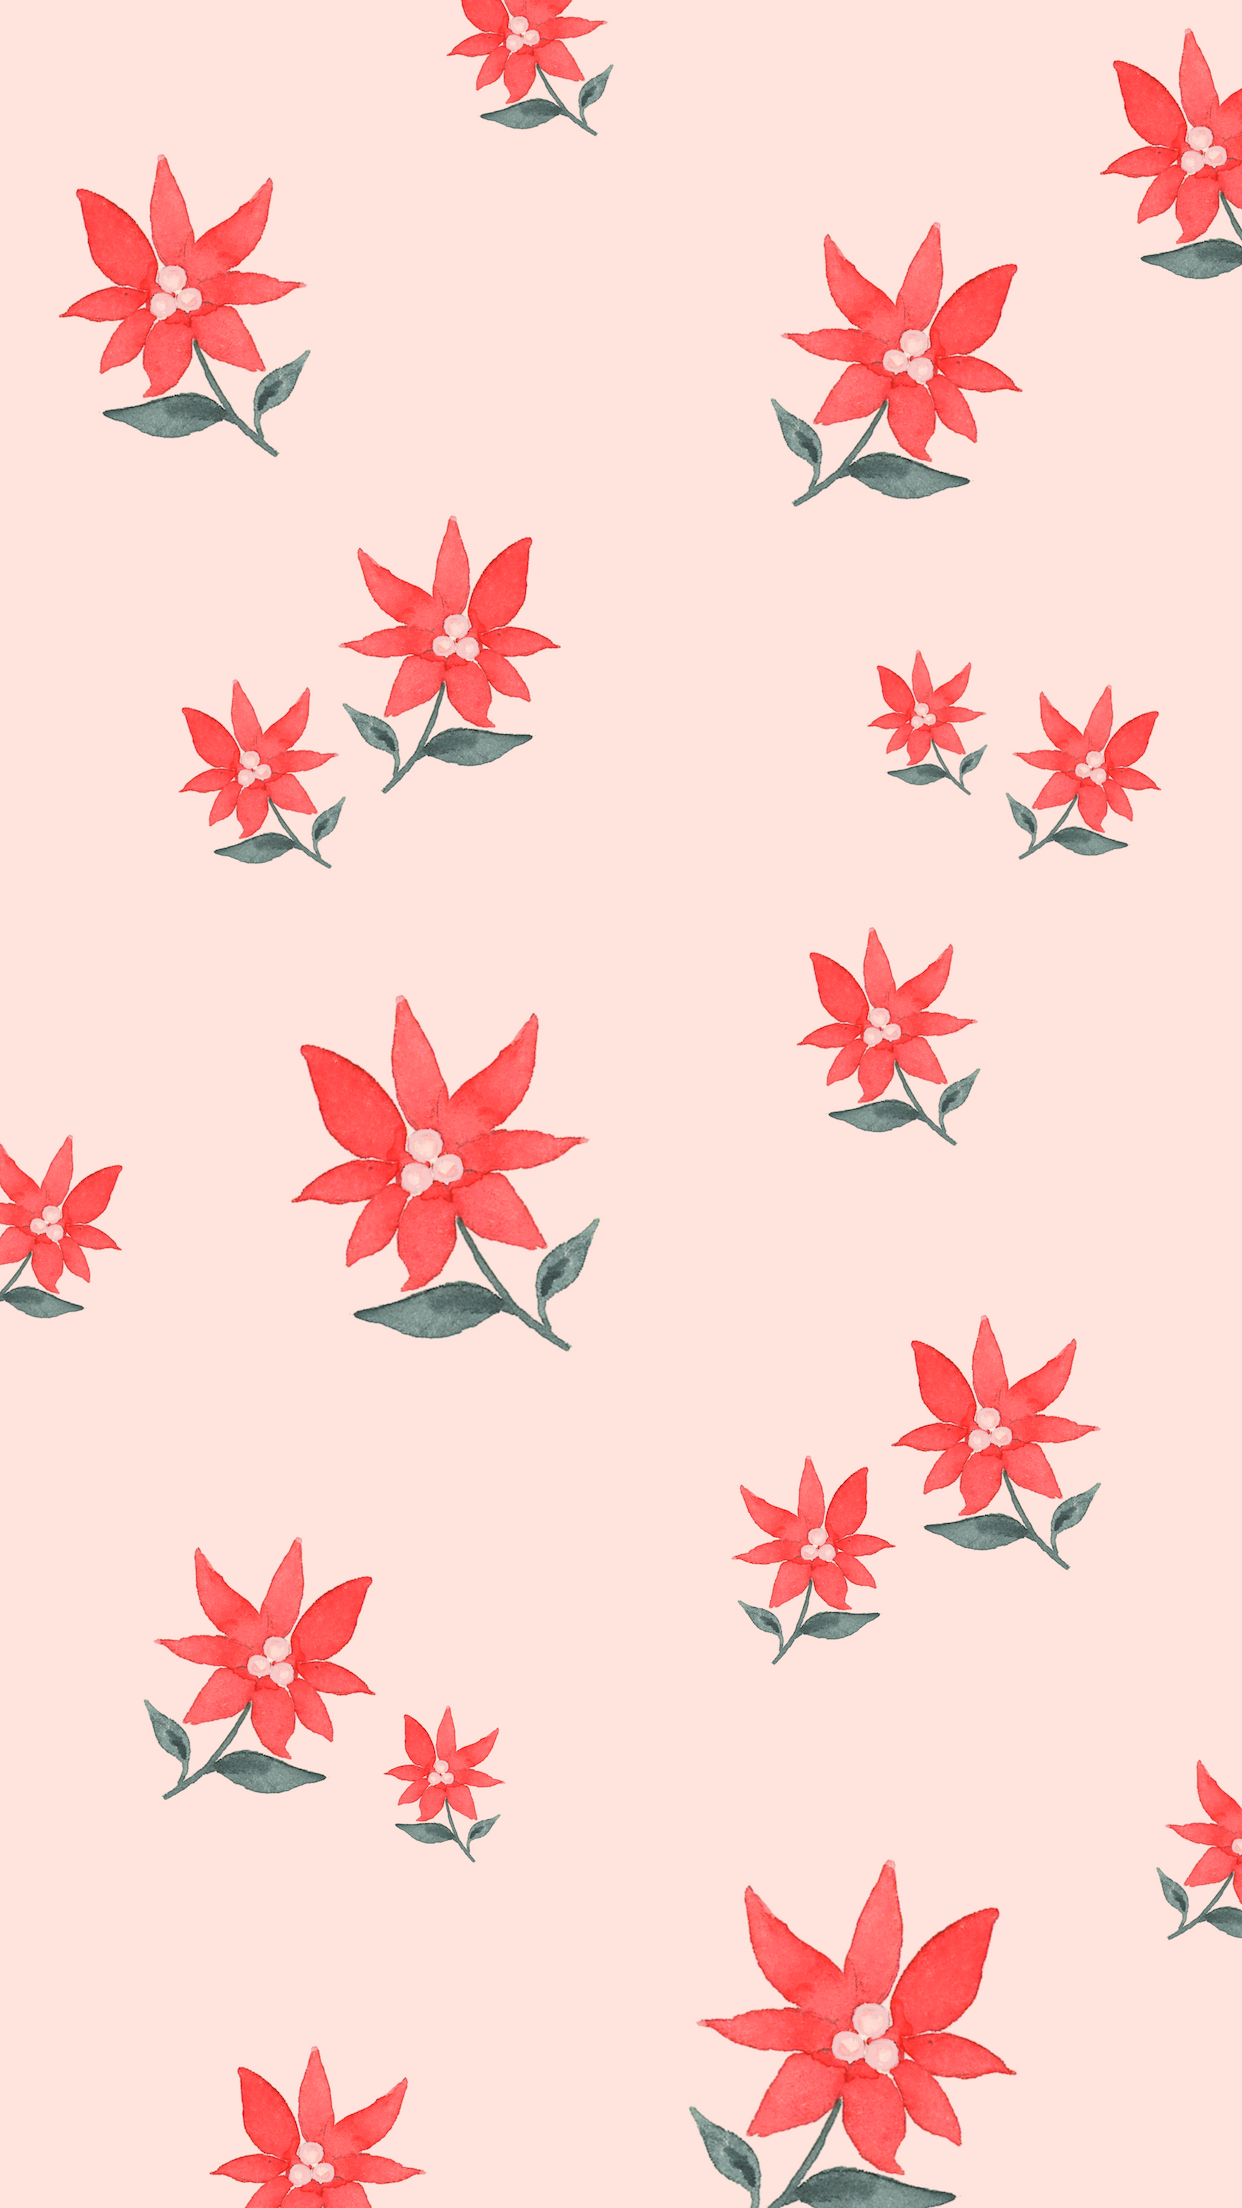 Holiday-Christmas-Winter-Phone-Wallpaper-Background-Poinsettia.jpg